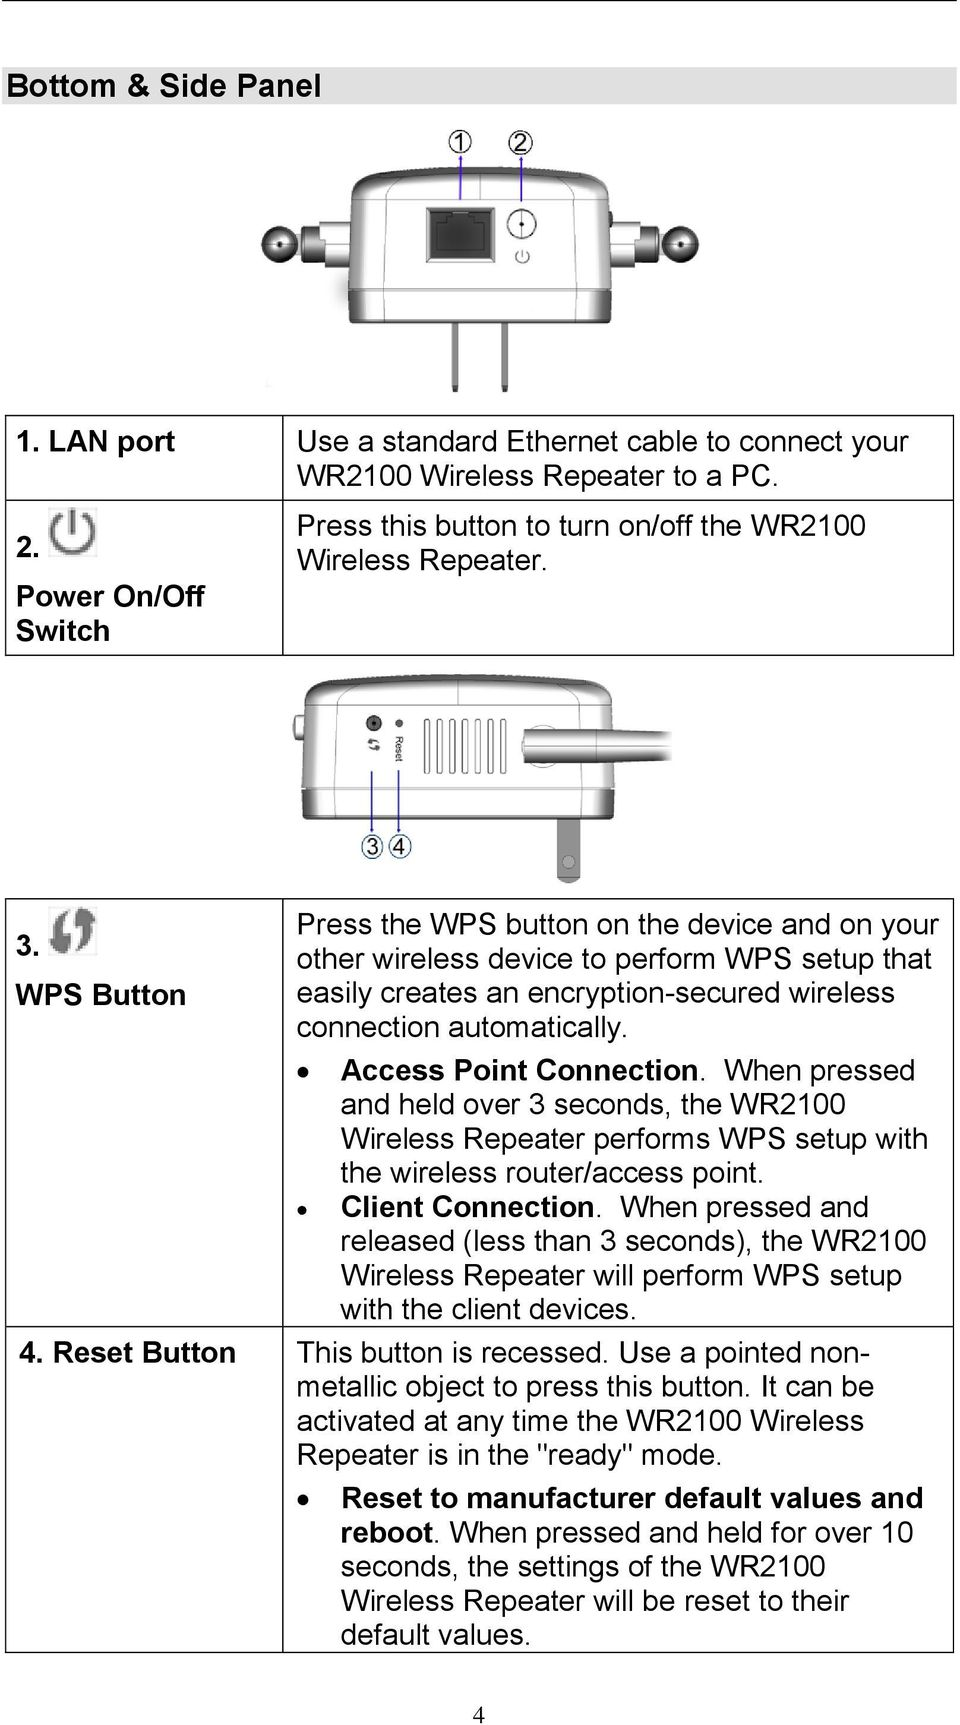 Access Point Connection. When pressed and held over 3 seconds, the WR2100 Wireless Repeater performs WPS setup with the wireless router/access point. Client Connection.